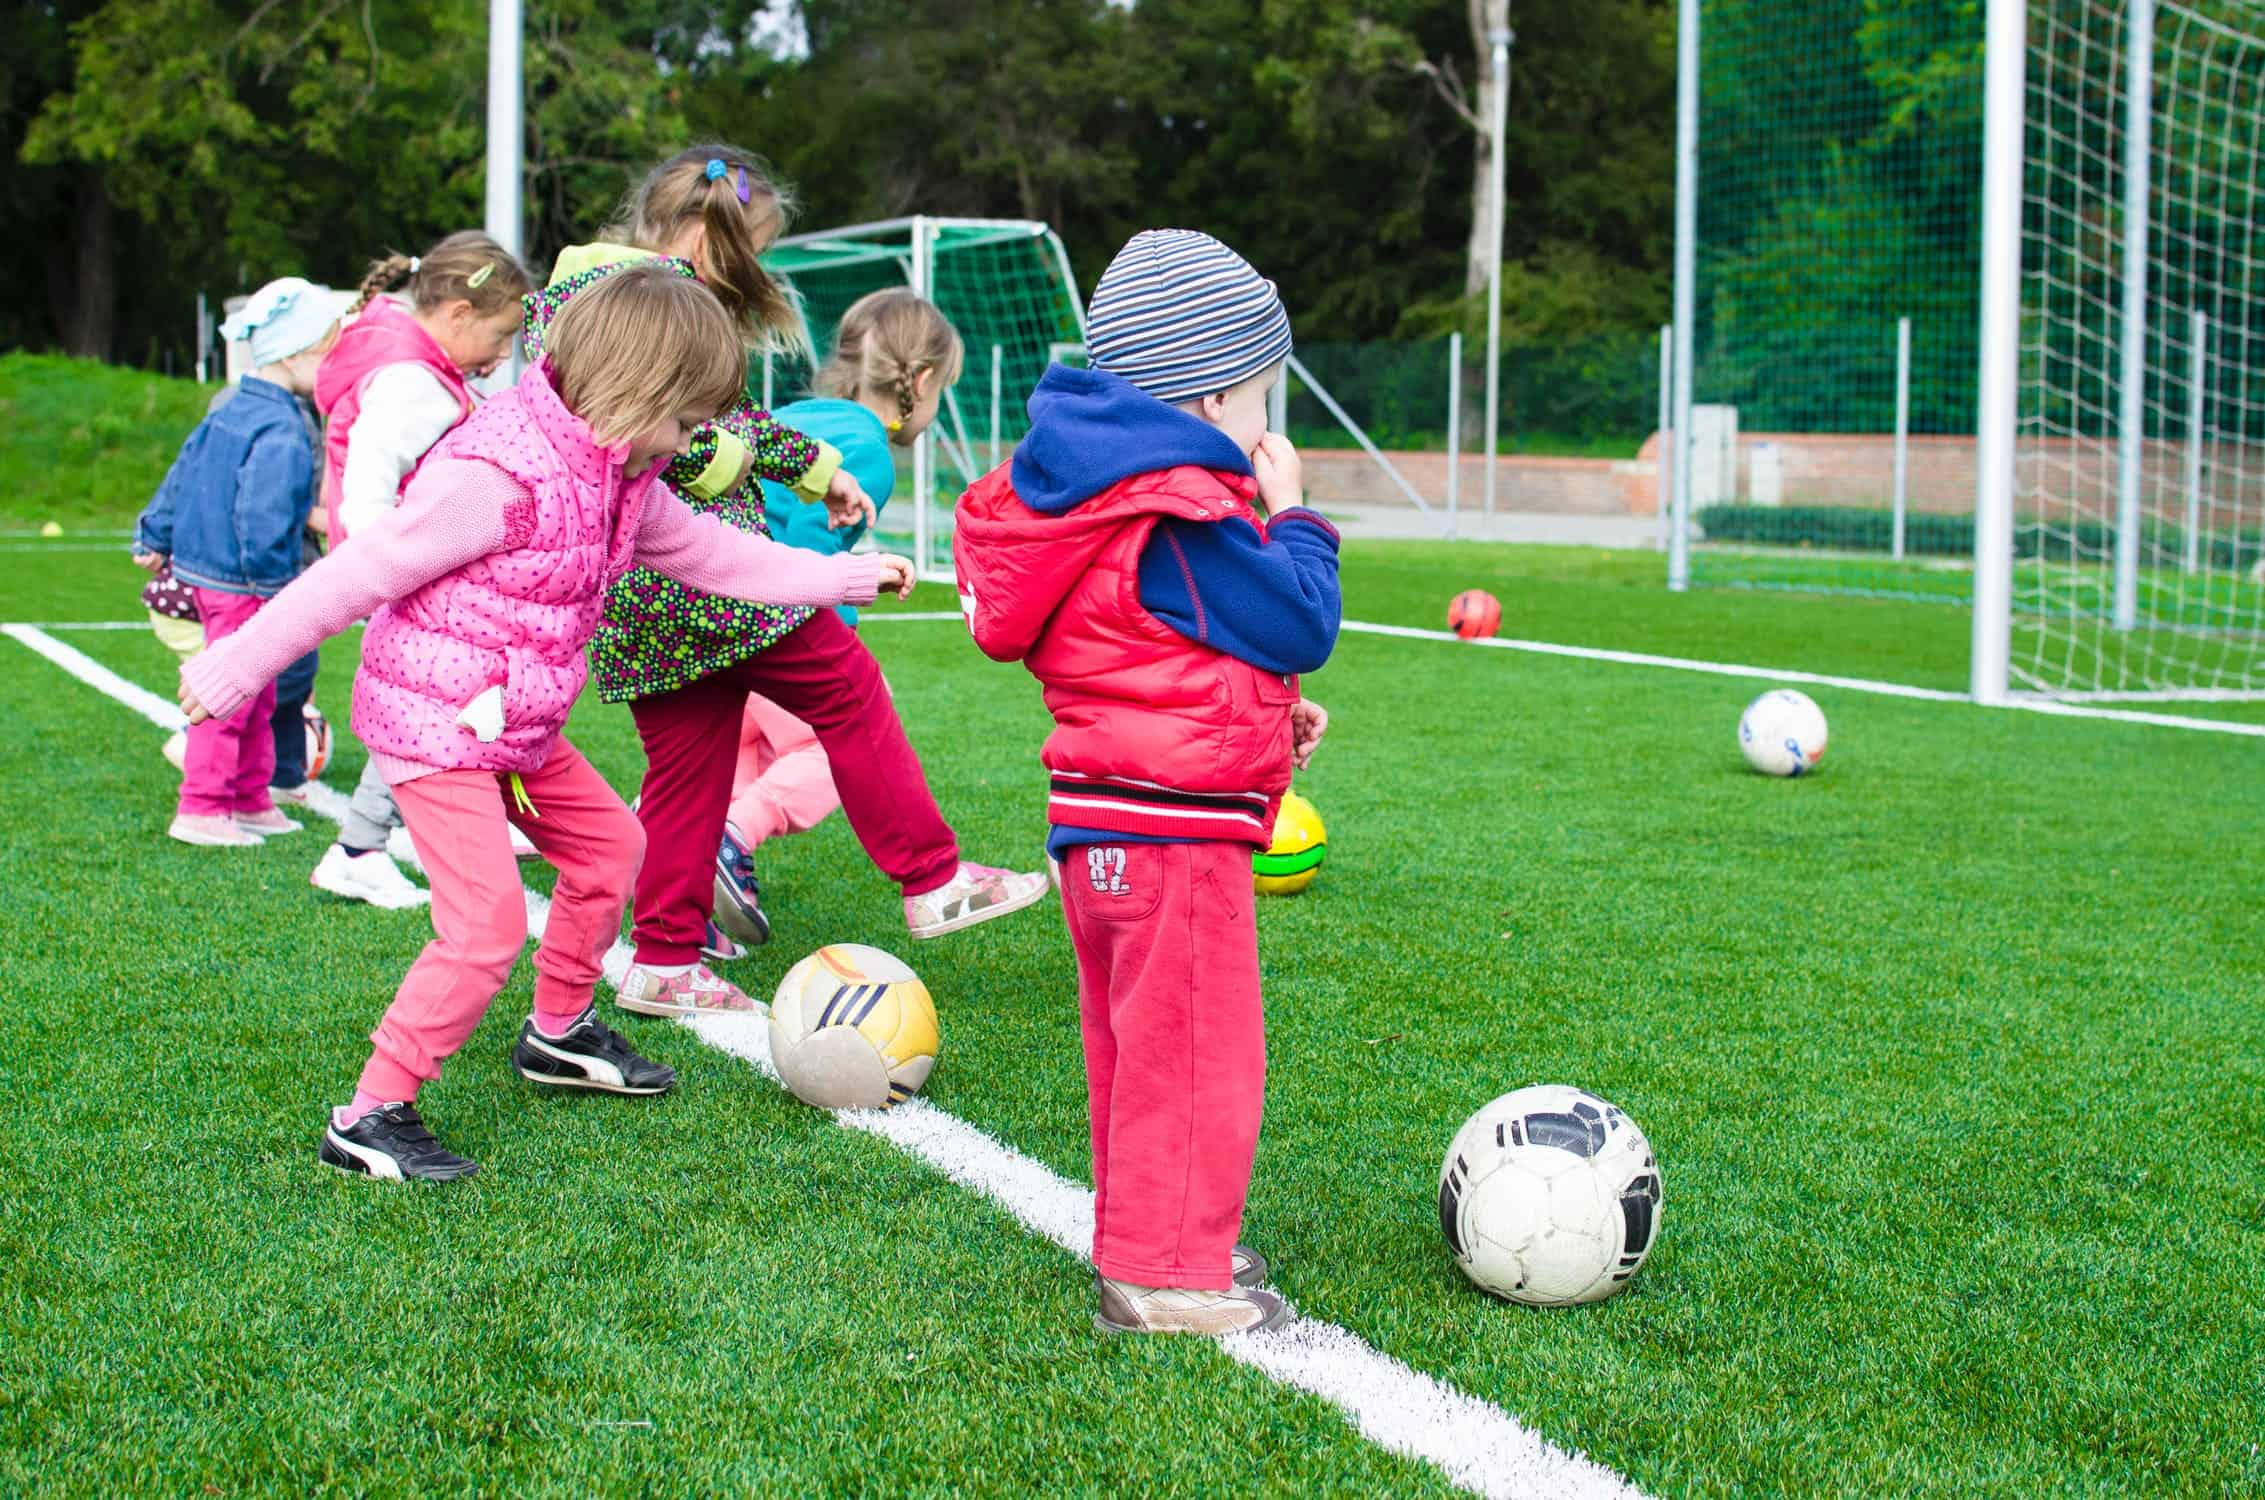 Best Kids Sports According To Your Child's Age